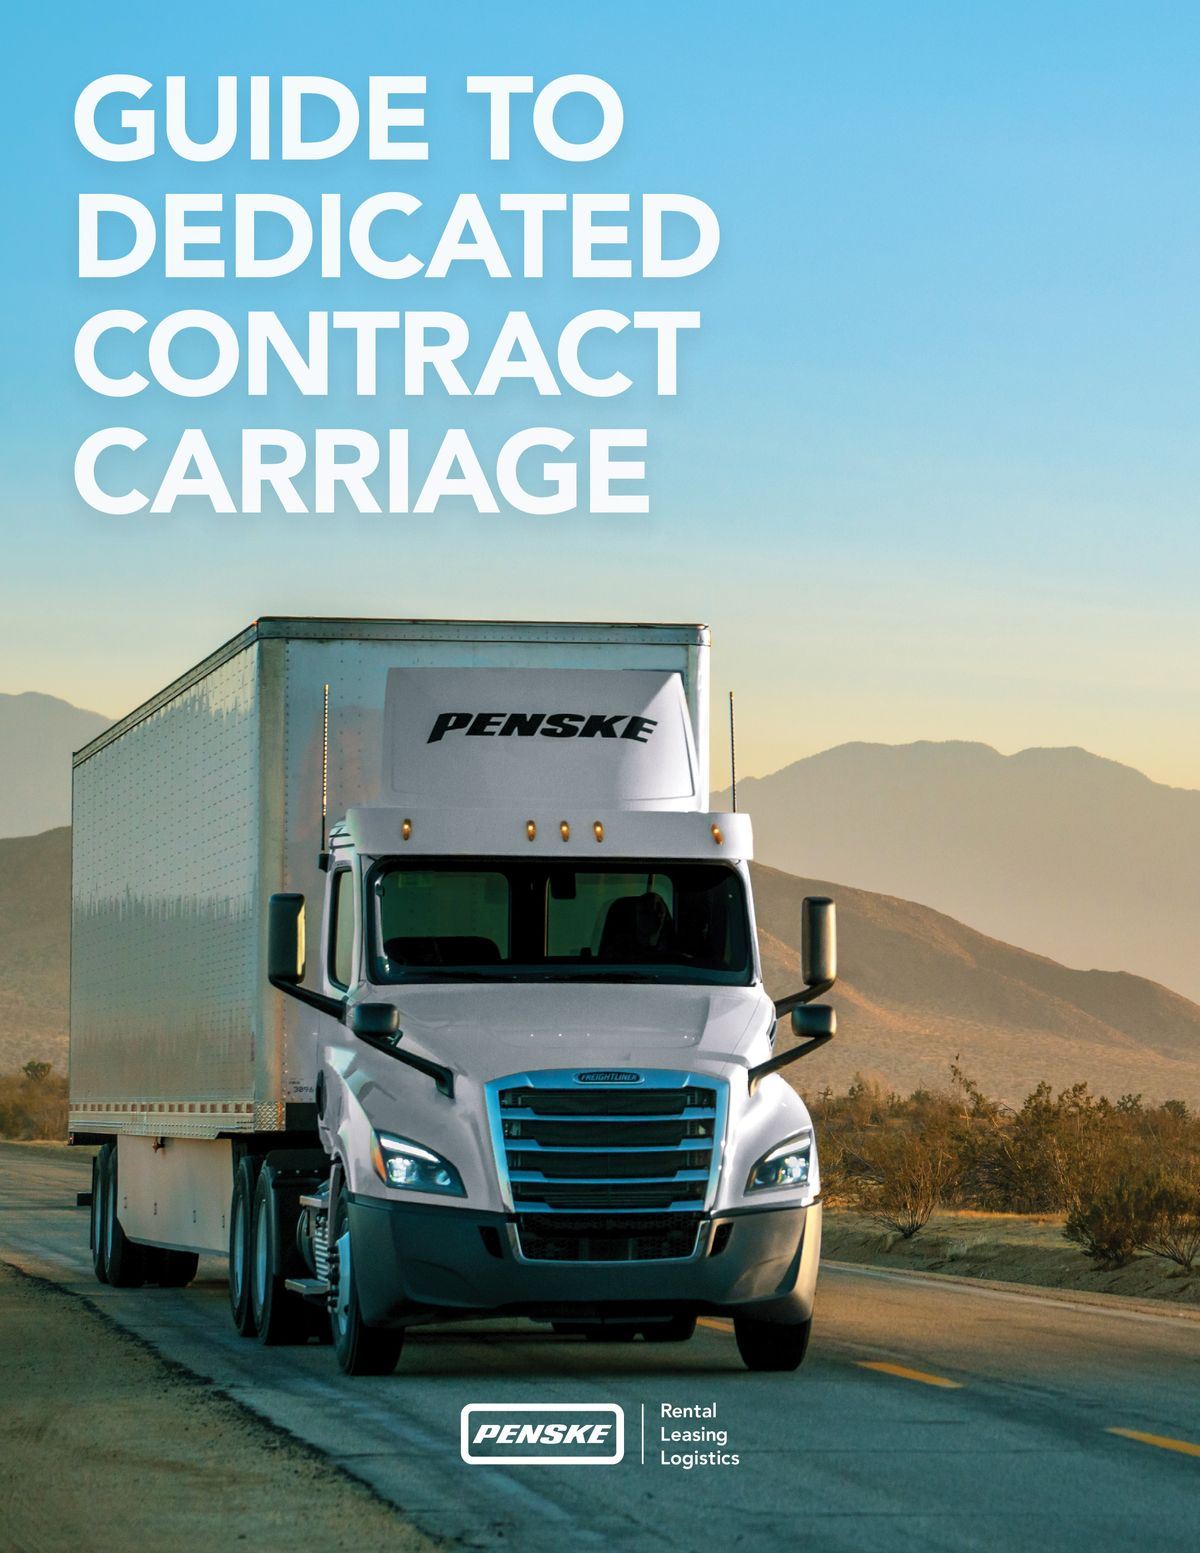 Penske Logistics Delivers New Guide to Dedicated Contract Carriage Services